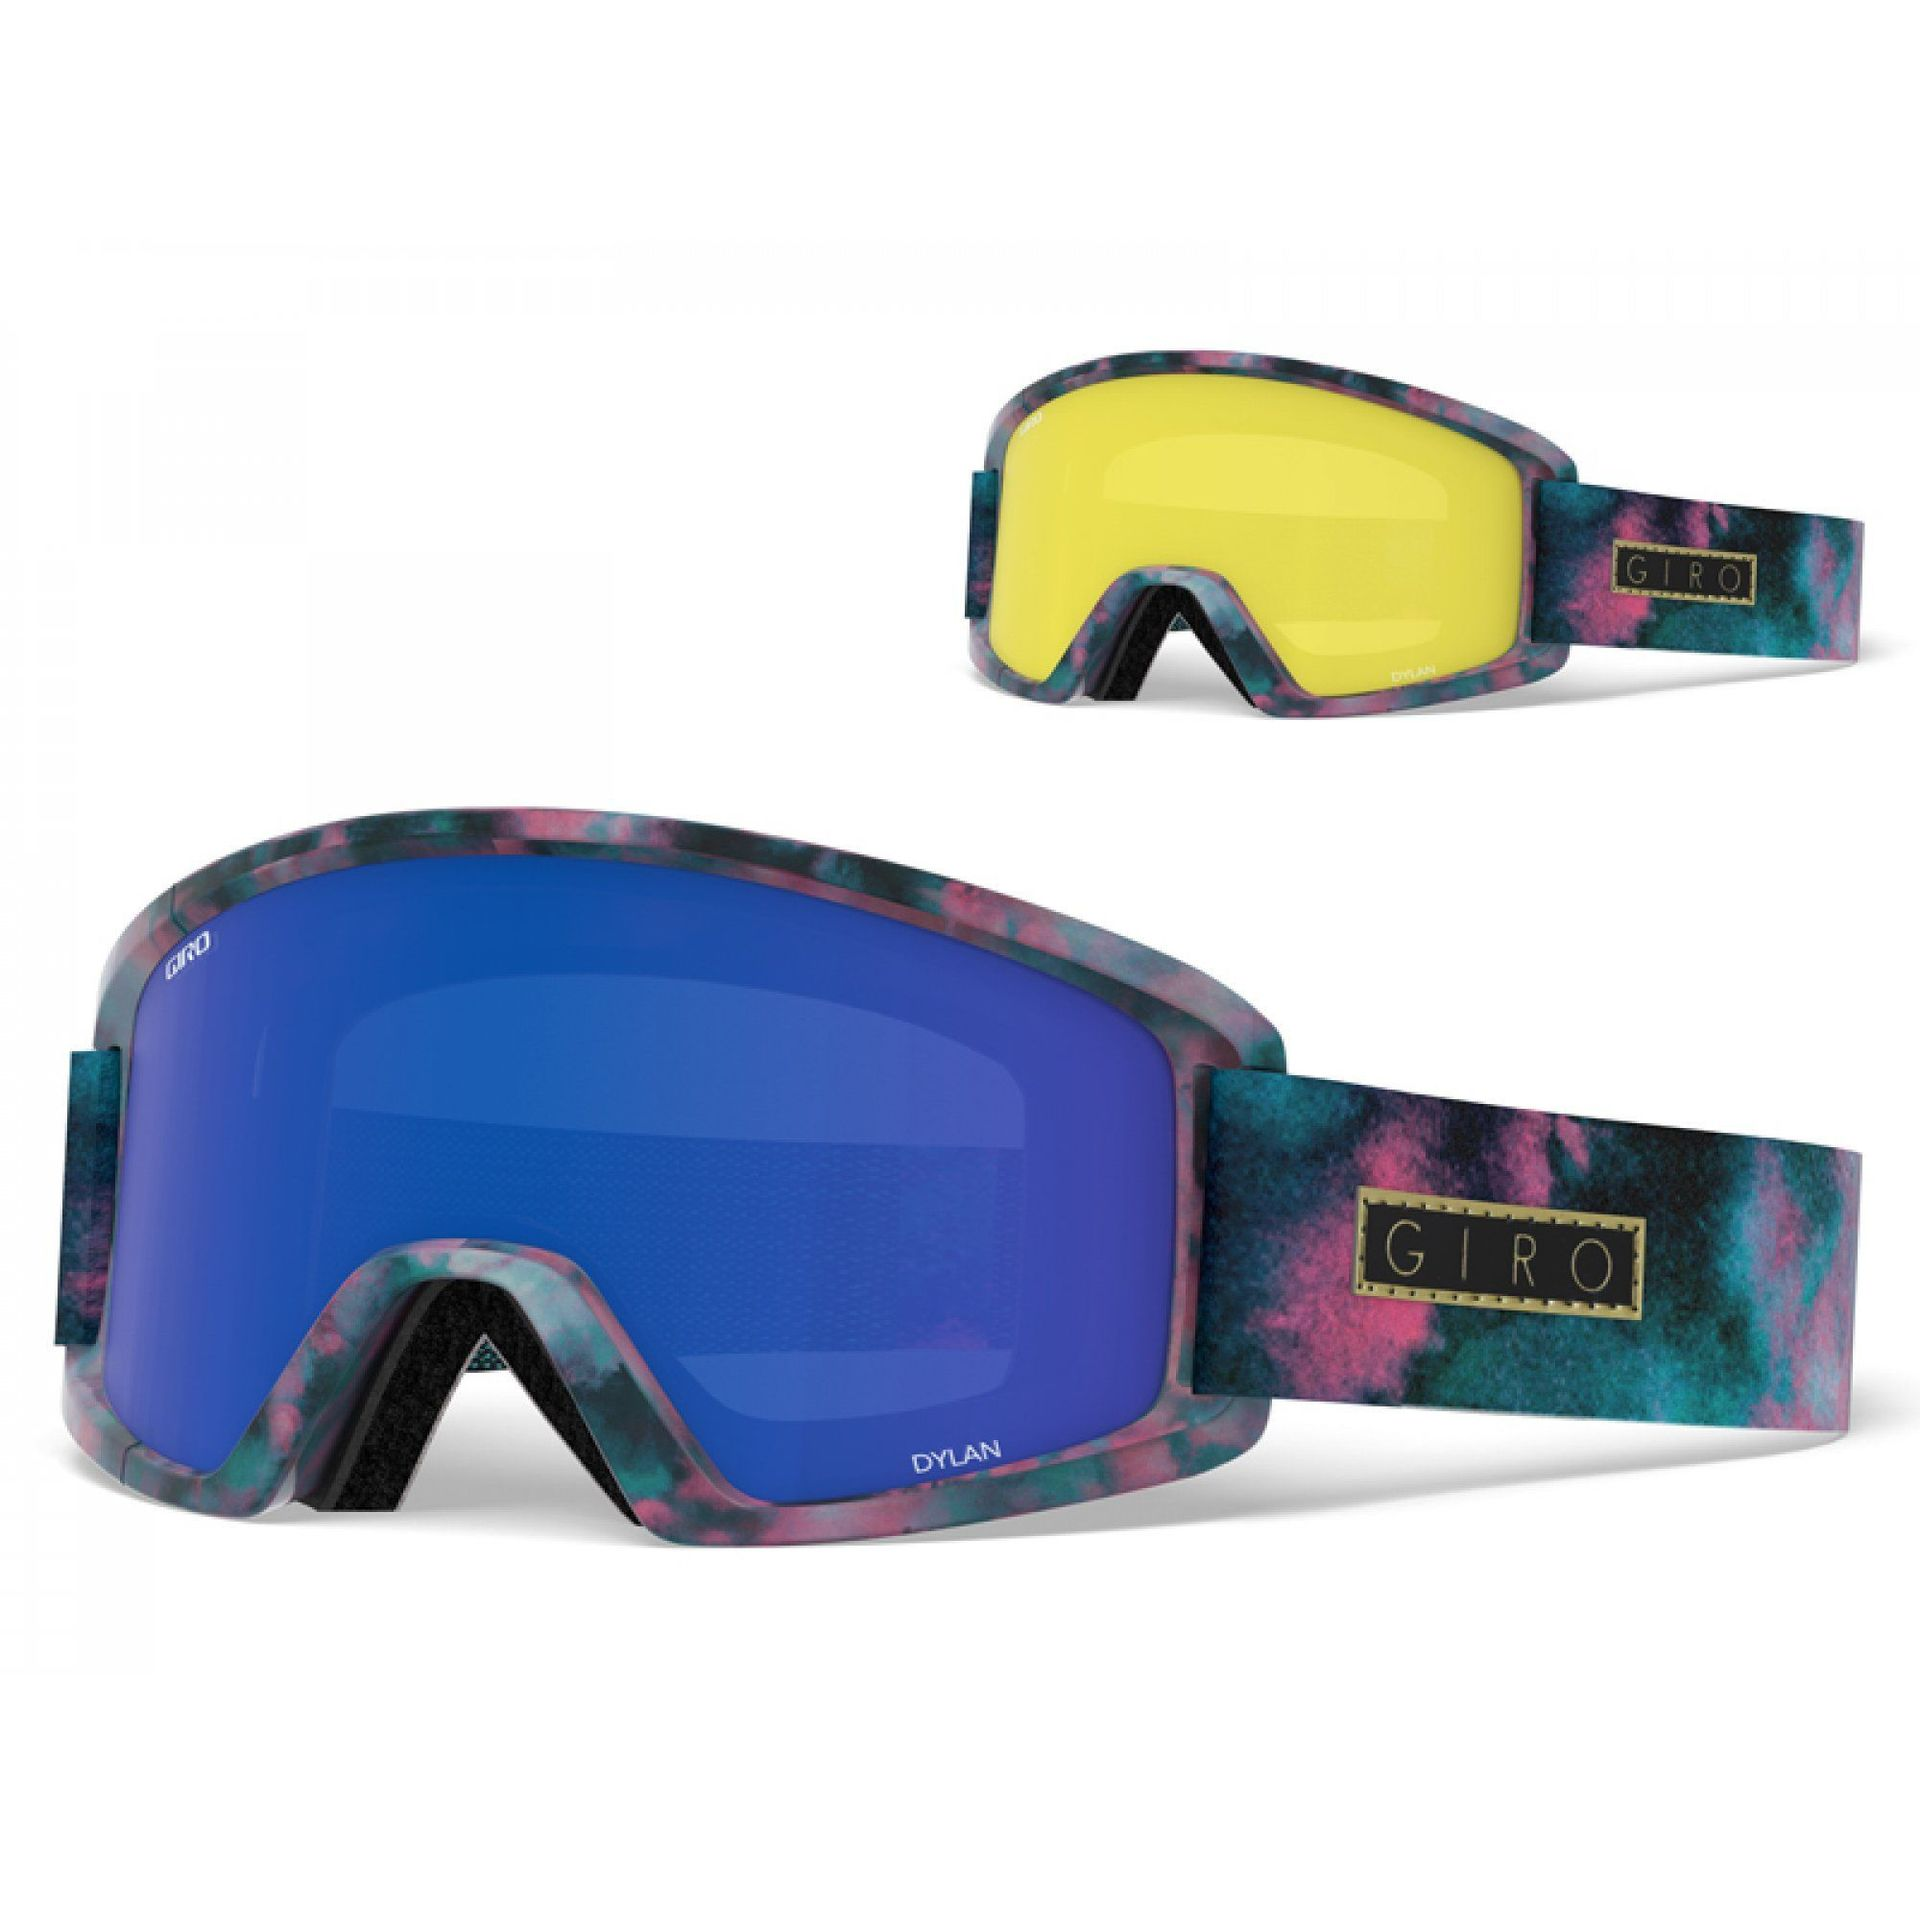 GOGLE GIRO DYLAN BLEACHED OUT|GREY COBALT+YELLOW 1